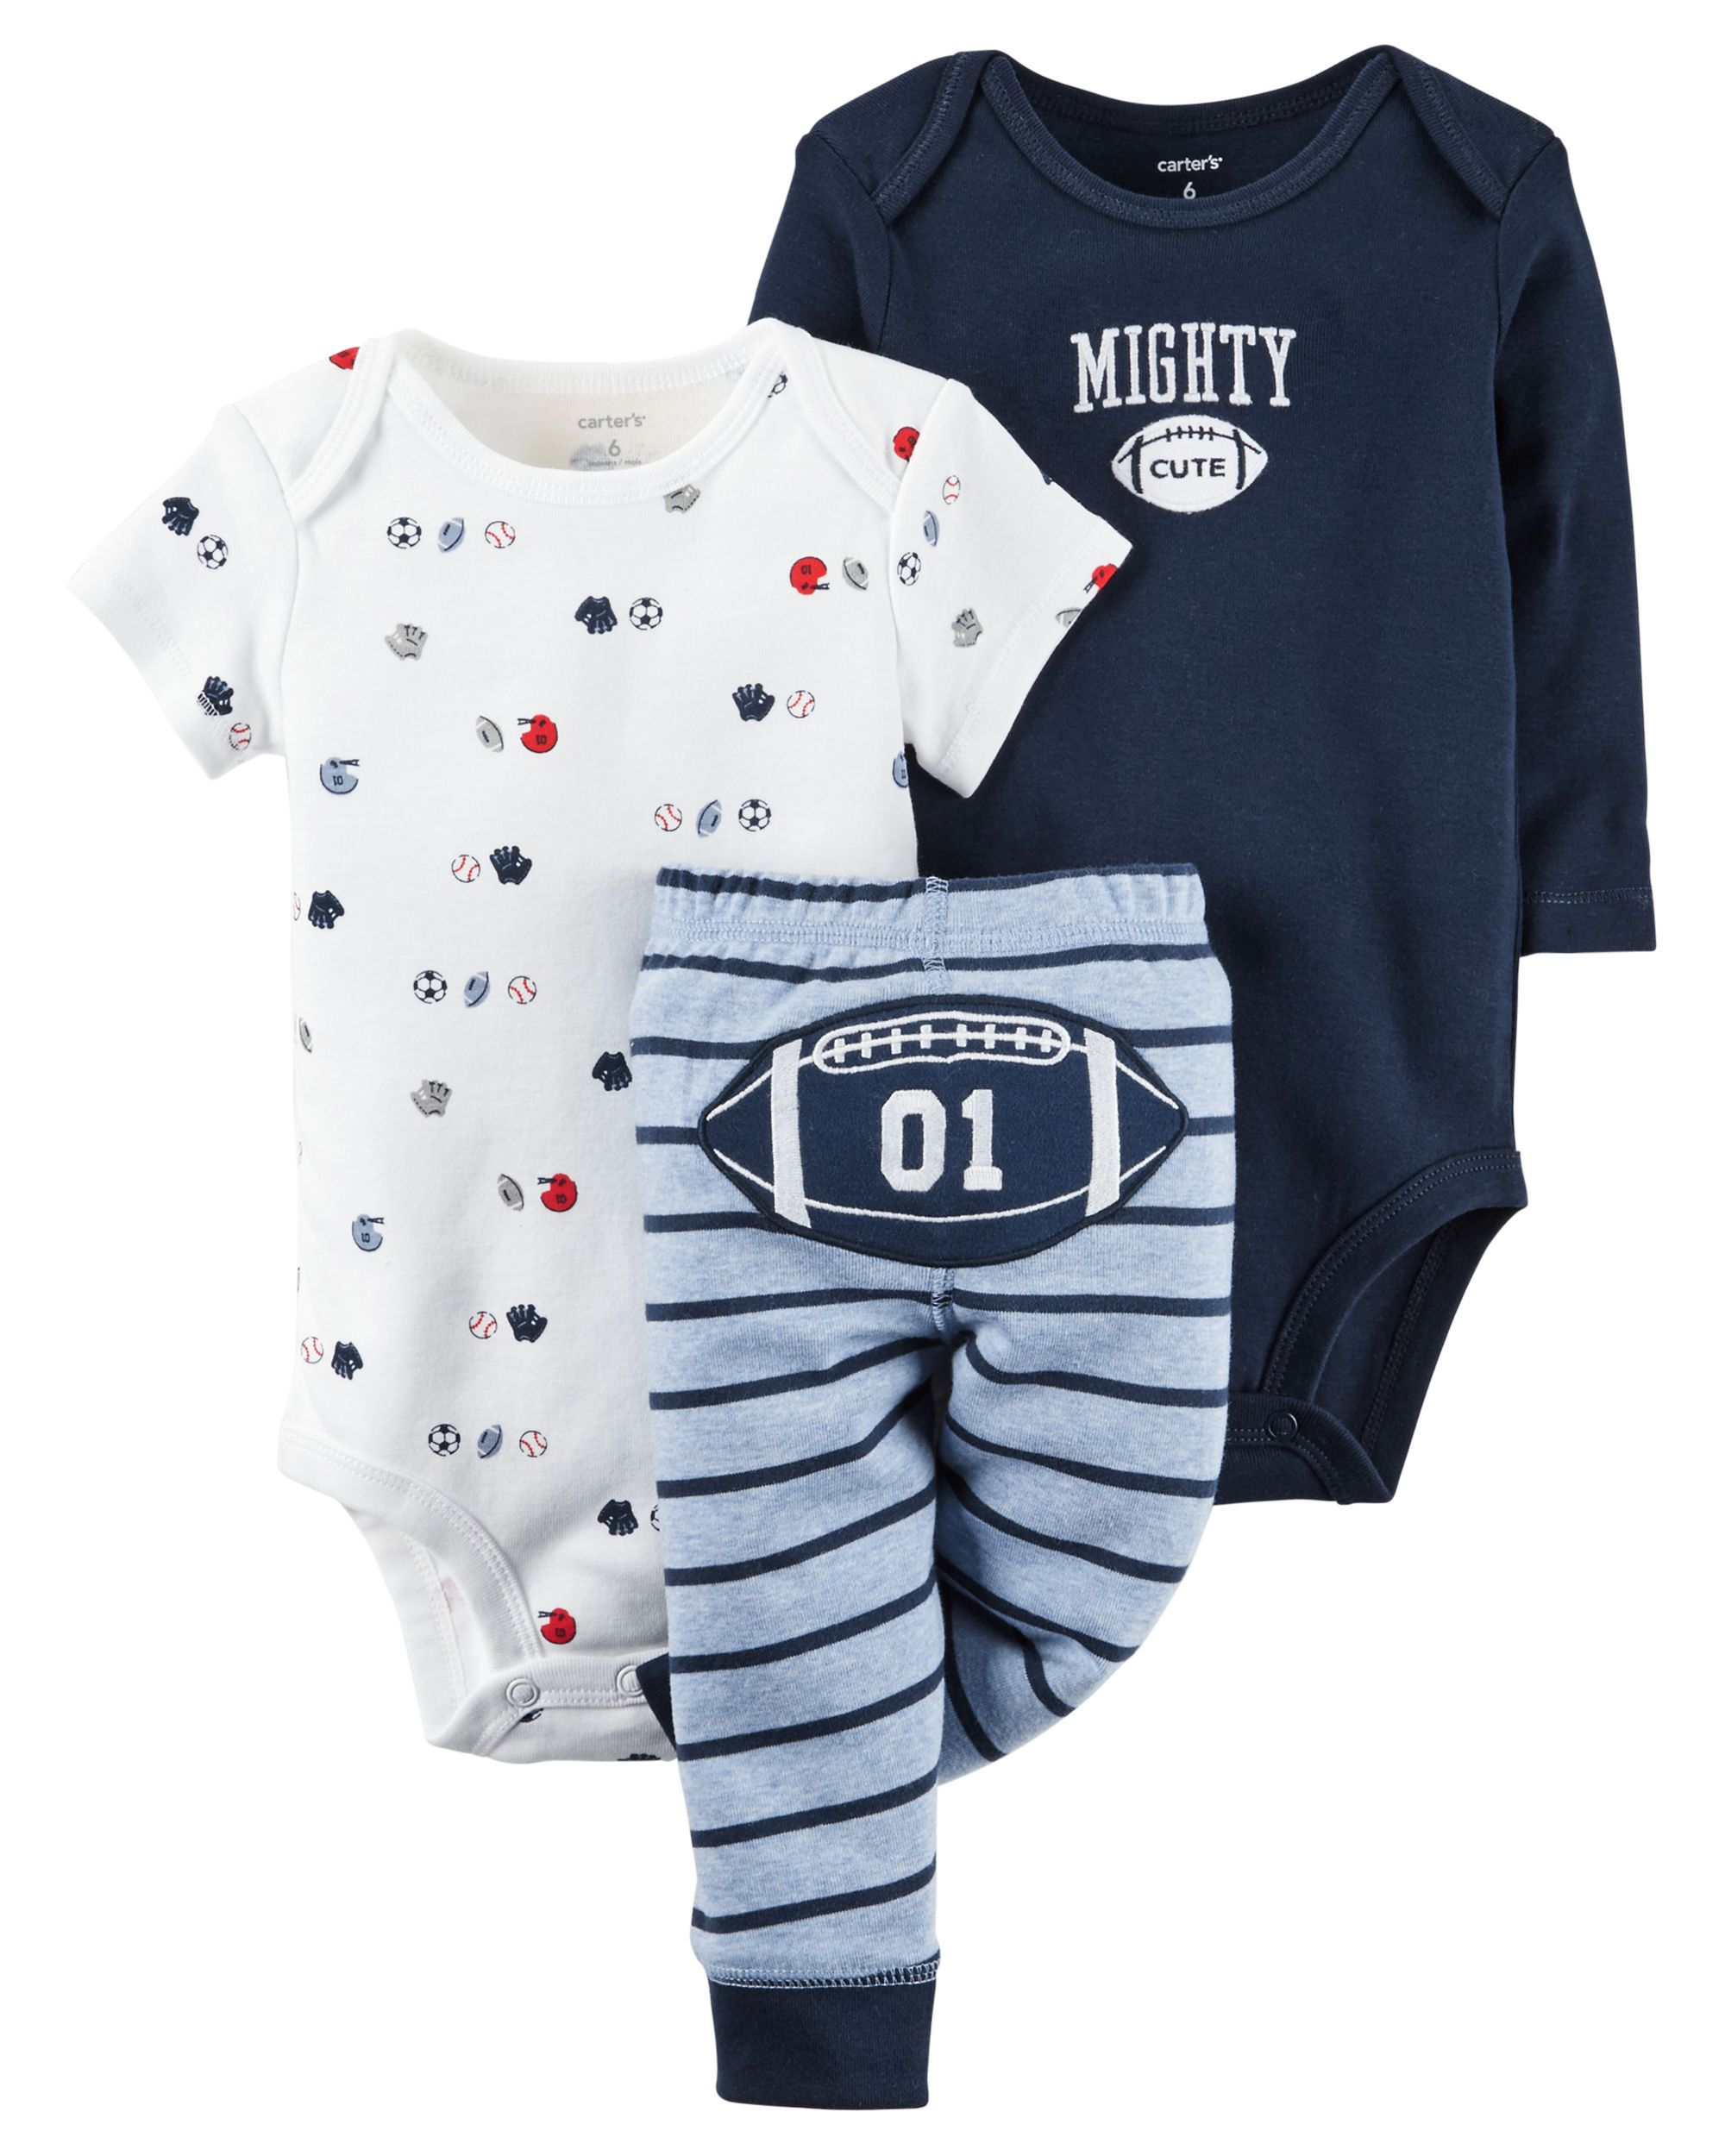 3 Piece Little Character Set Carters Com Baby Girl Clothes Newborn Outfits Baby Boy Clothing Sets